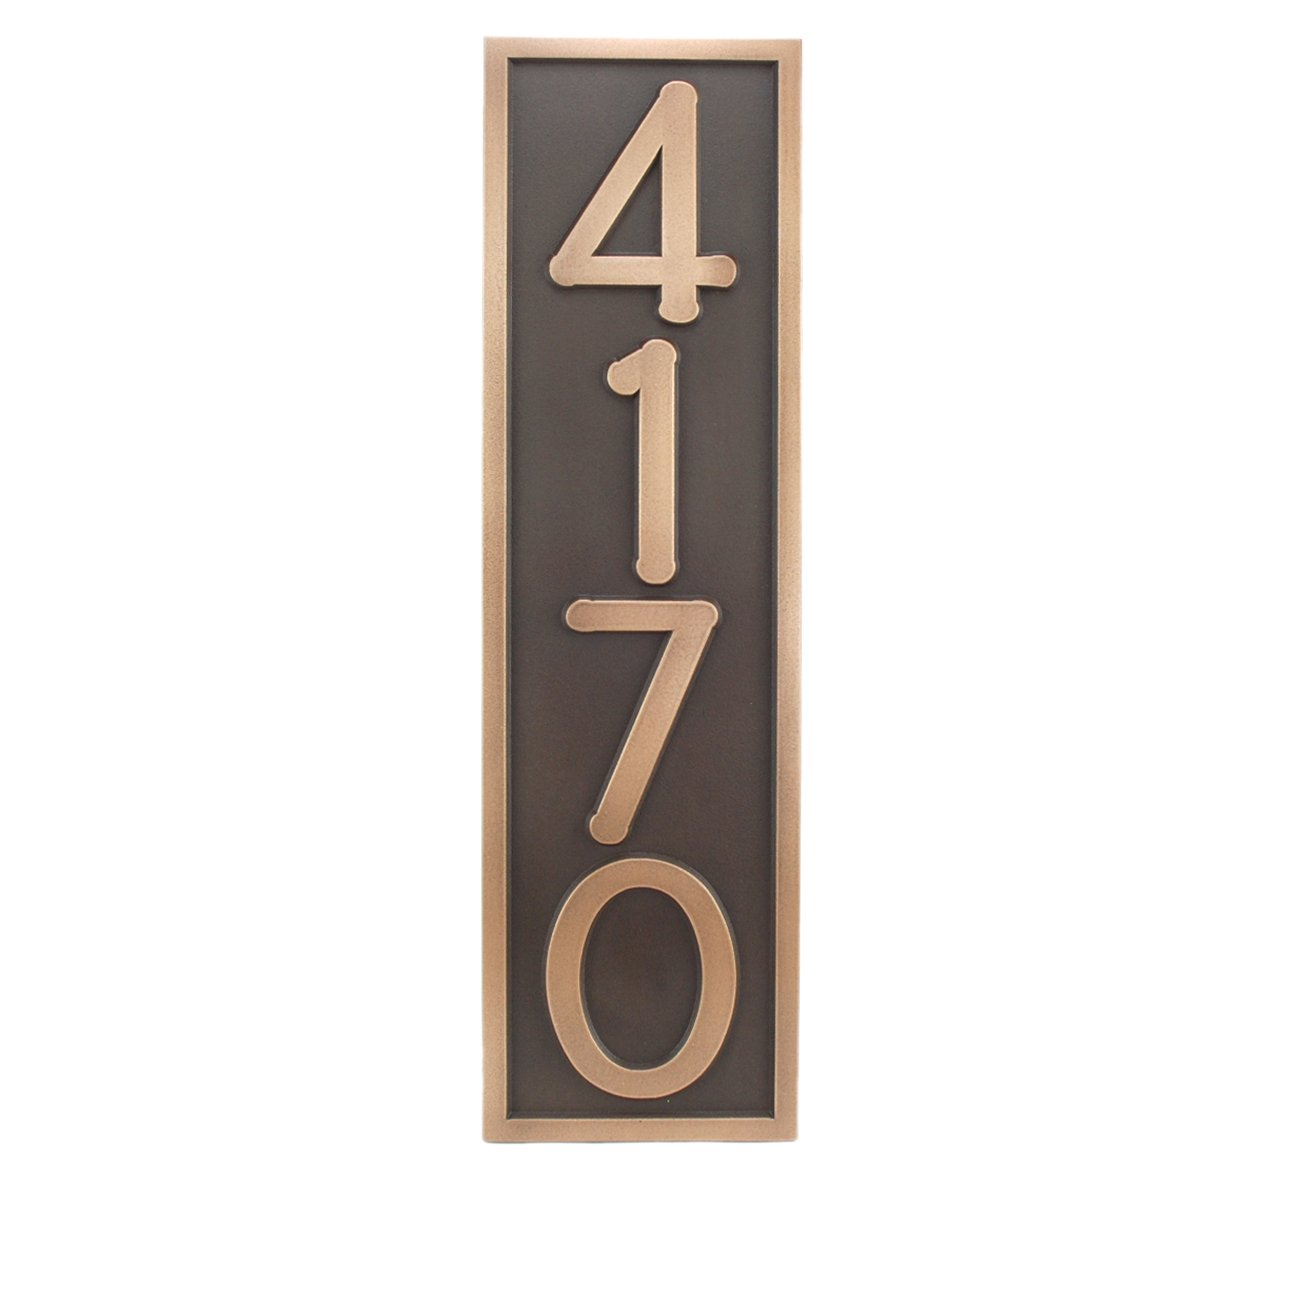 Frank Lloyd Vertical Home Number Plaque 6.5x23 - Raised Bronze Metal Coated by Atlas Signs and Plaques